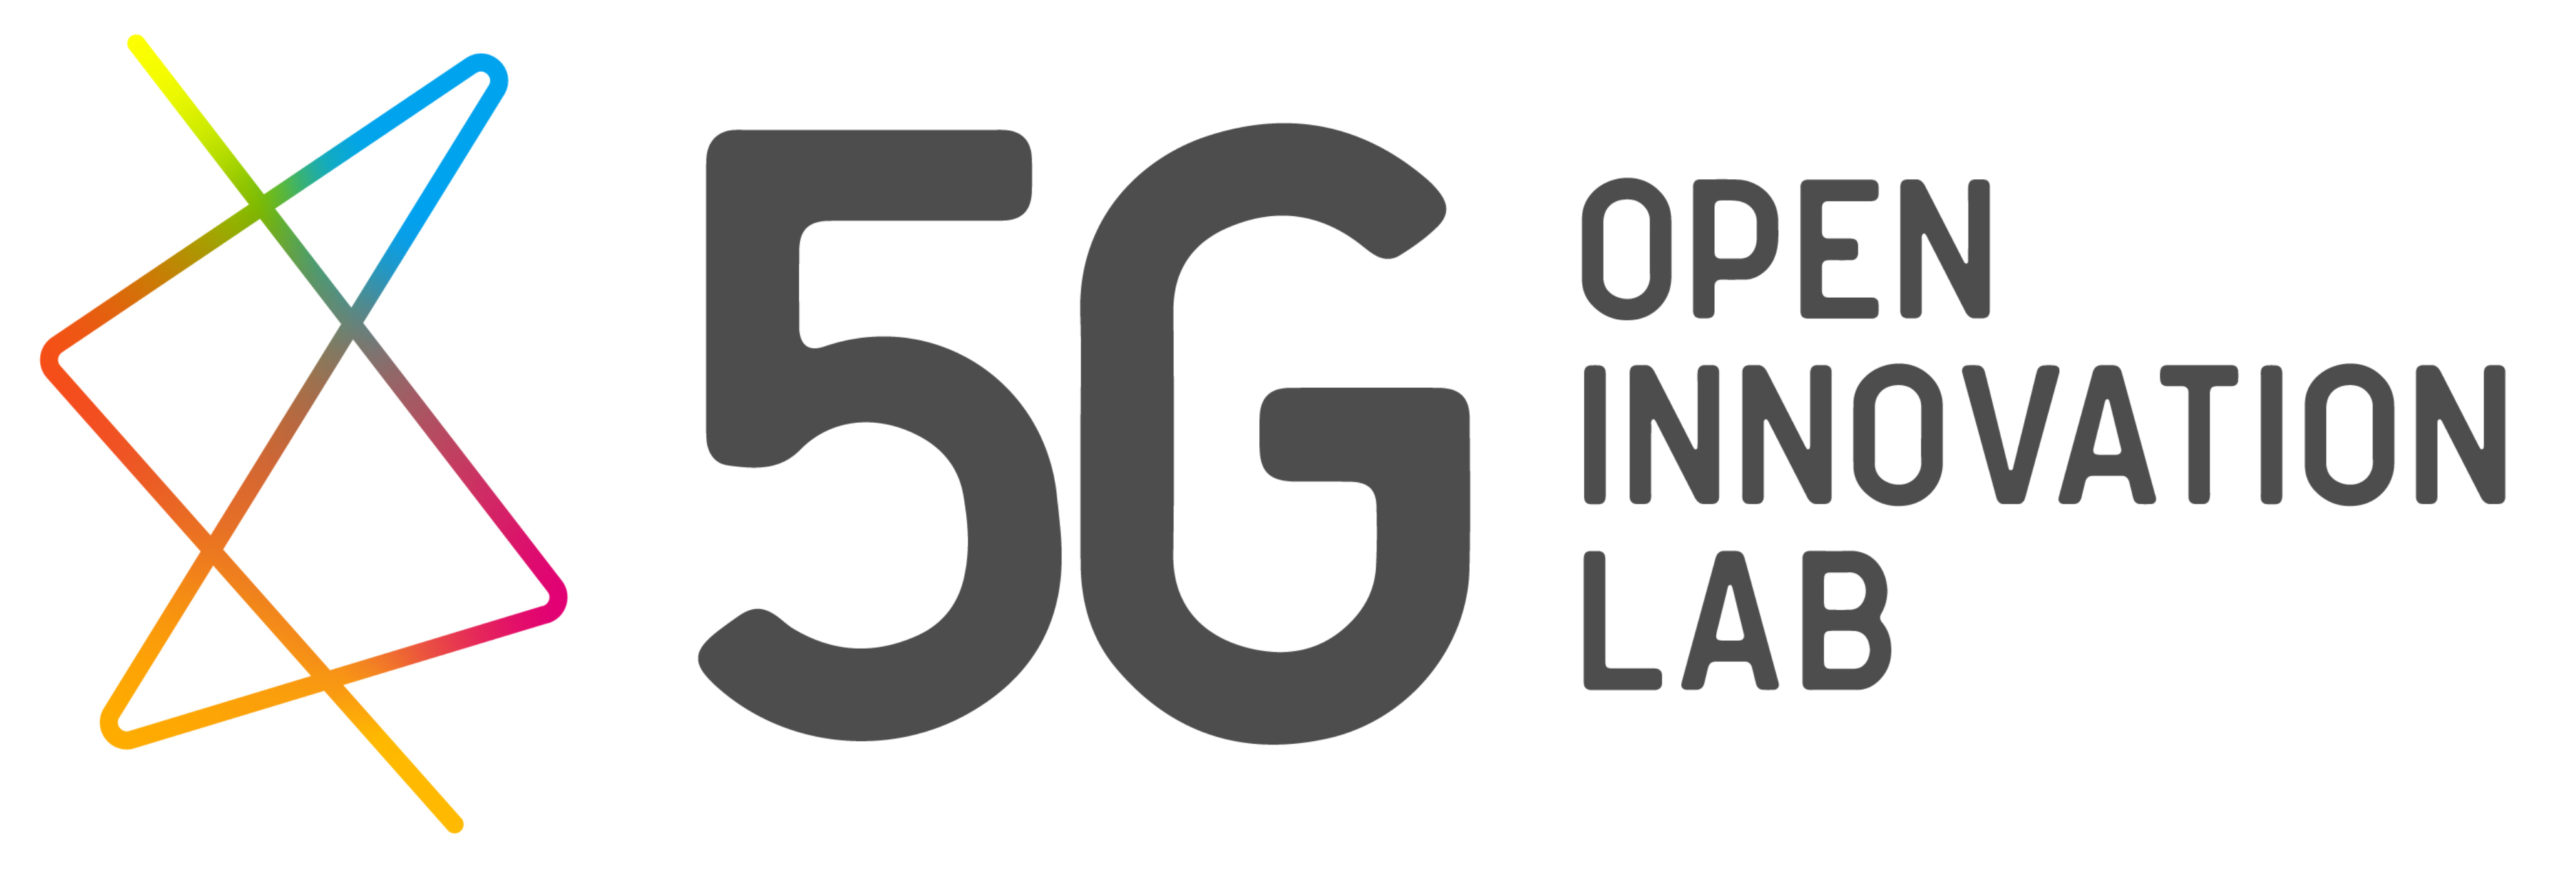 Continual joins the 5G Open Innovation Lab